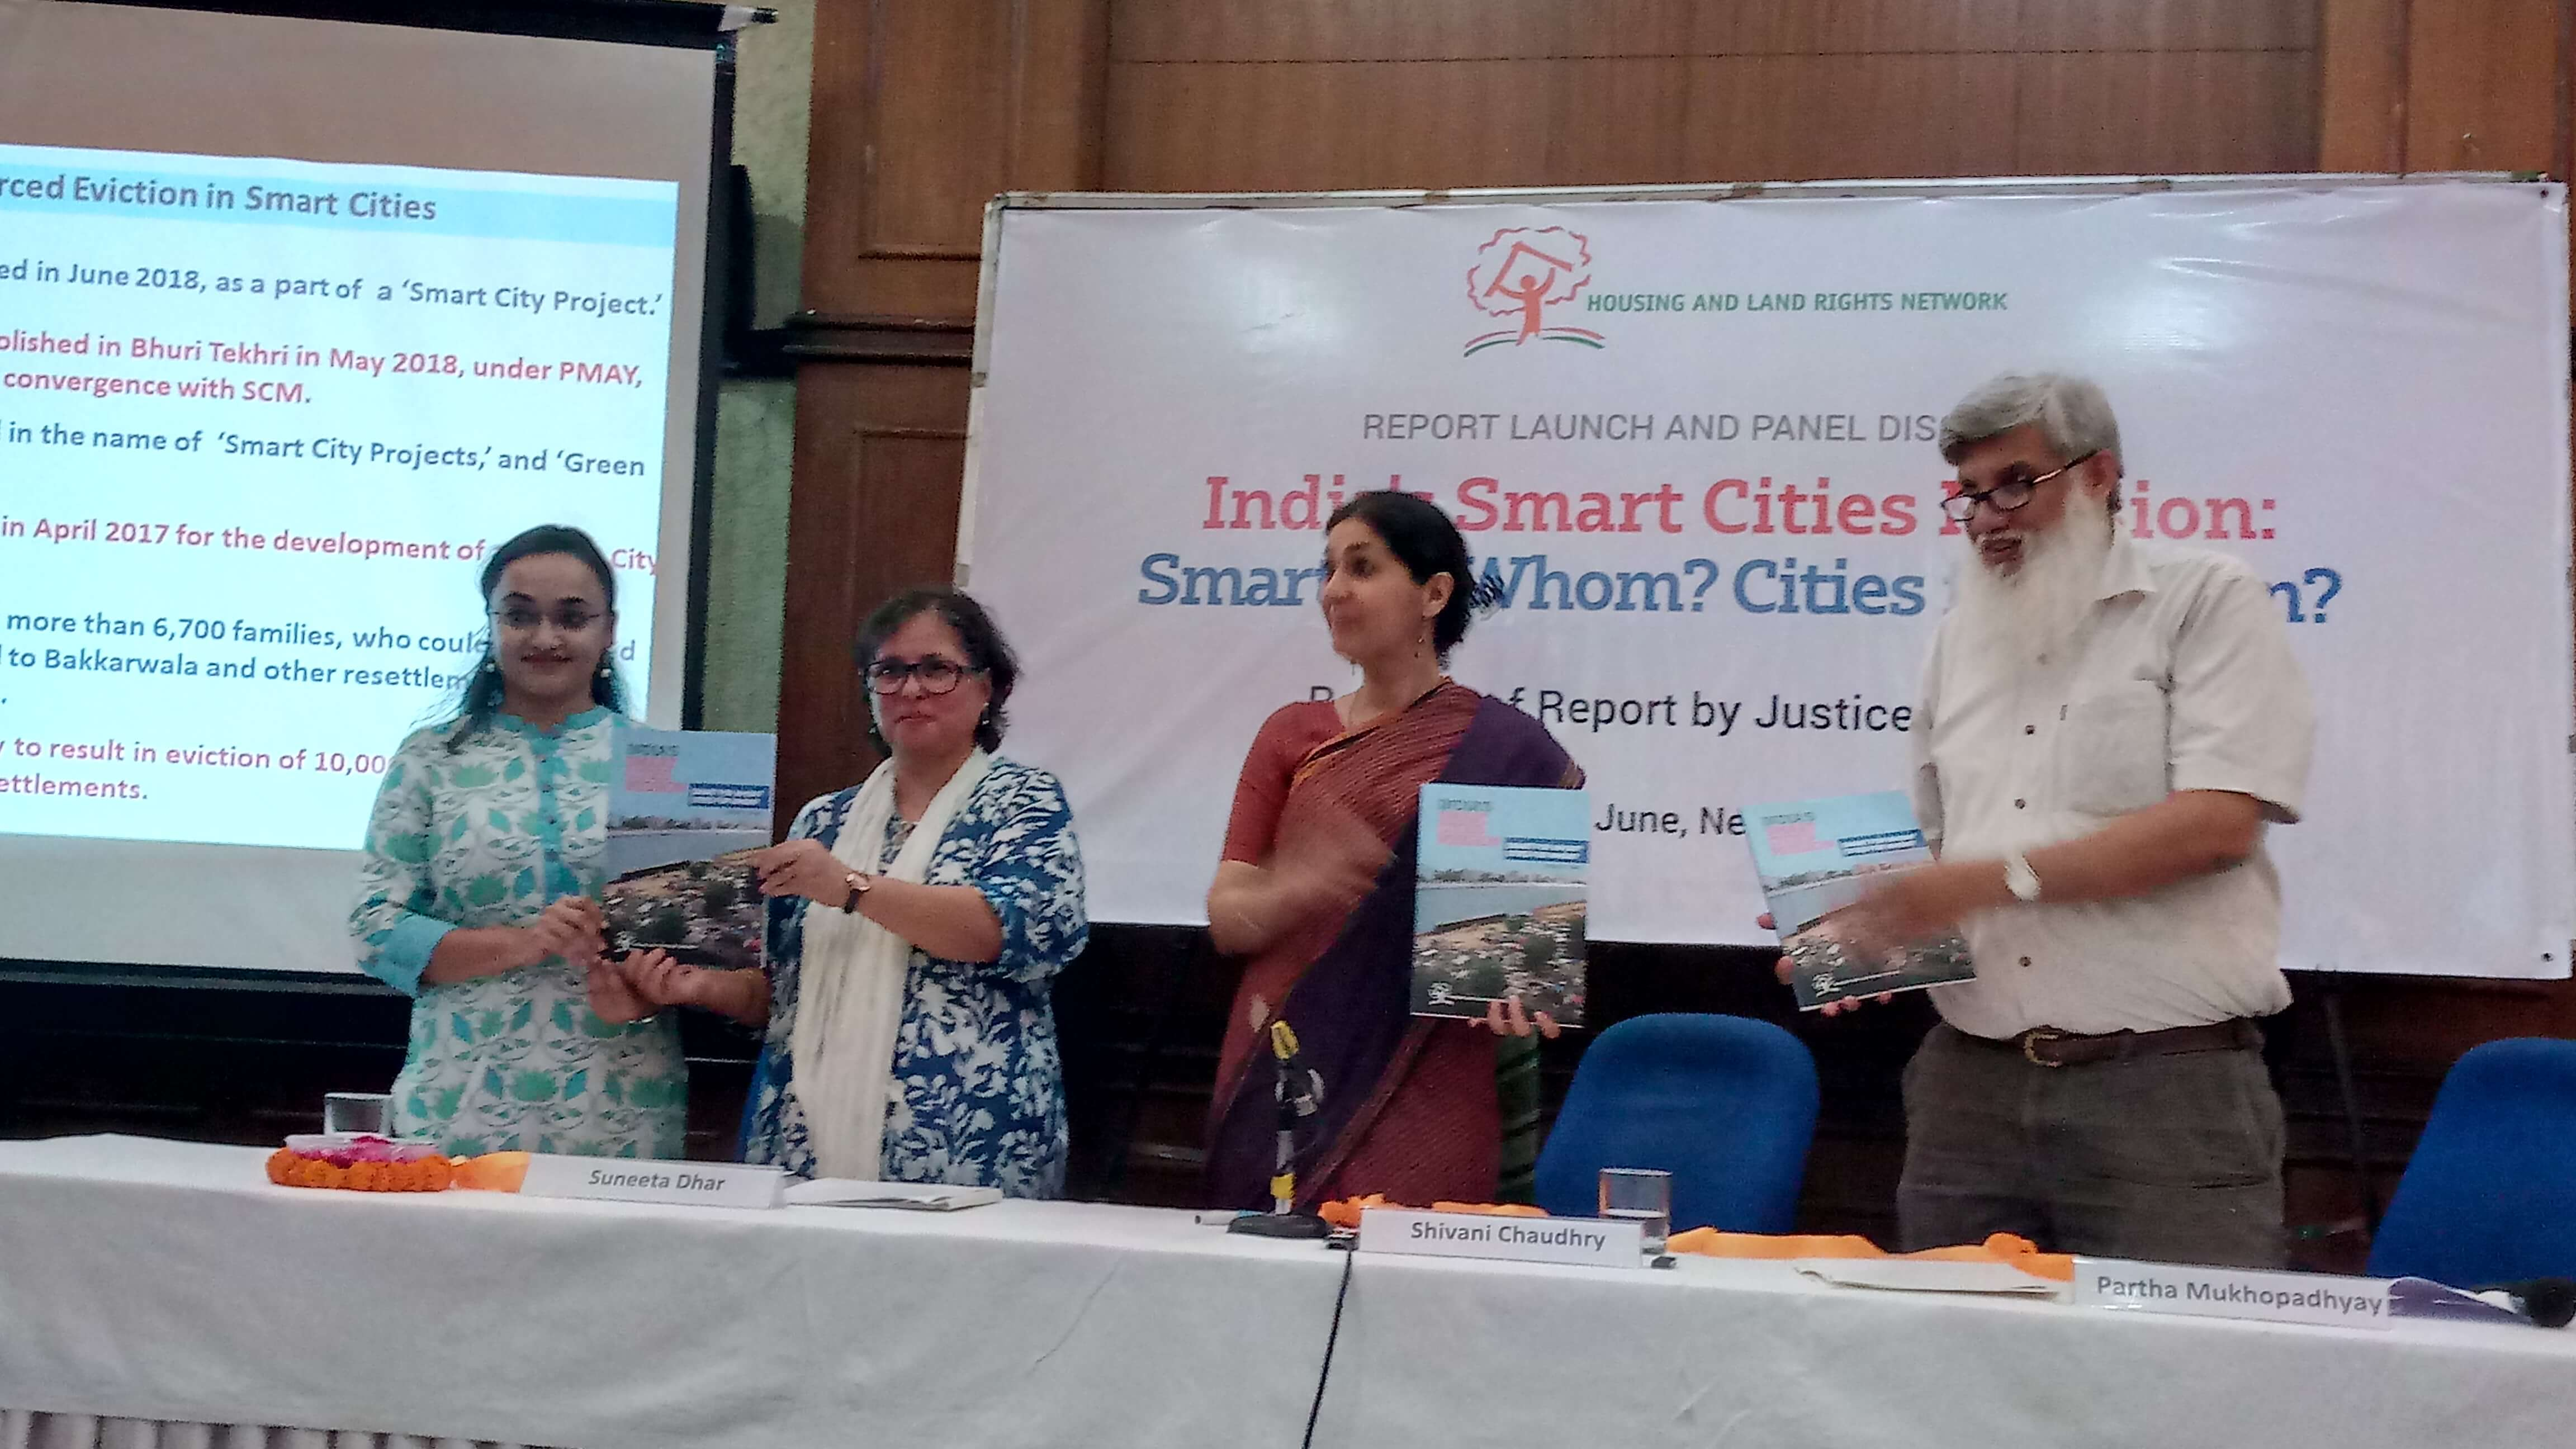 Smart Cities Mission: Study Points to Lack of Focus on Marginalised Communities